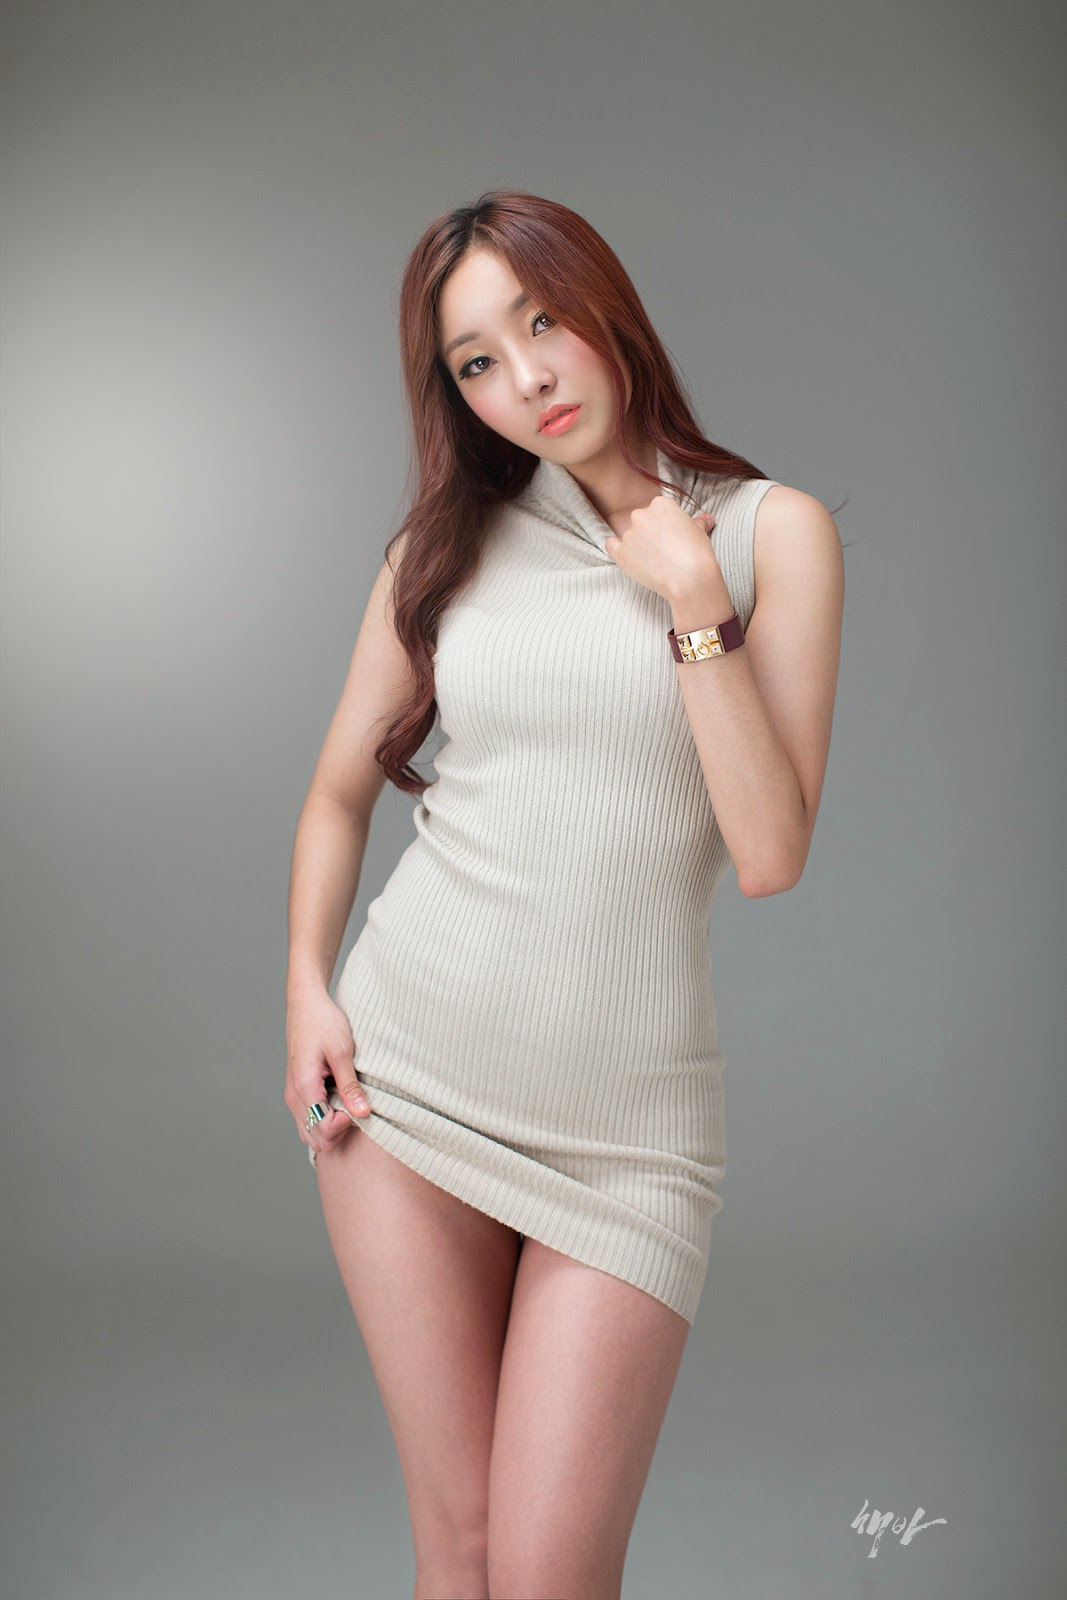 4 Just the usual hot stuff from Lee Hyun Ji - very cute asian girl-girlcute4u.blogspot.com